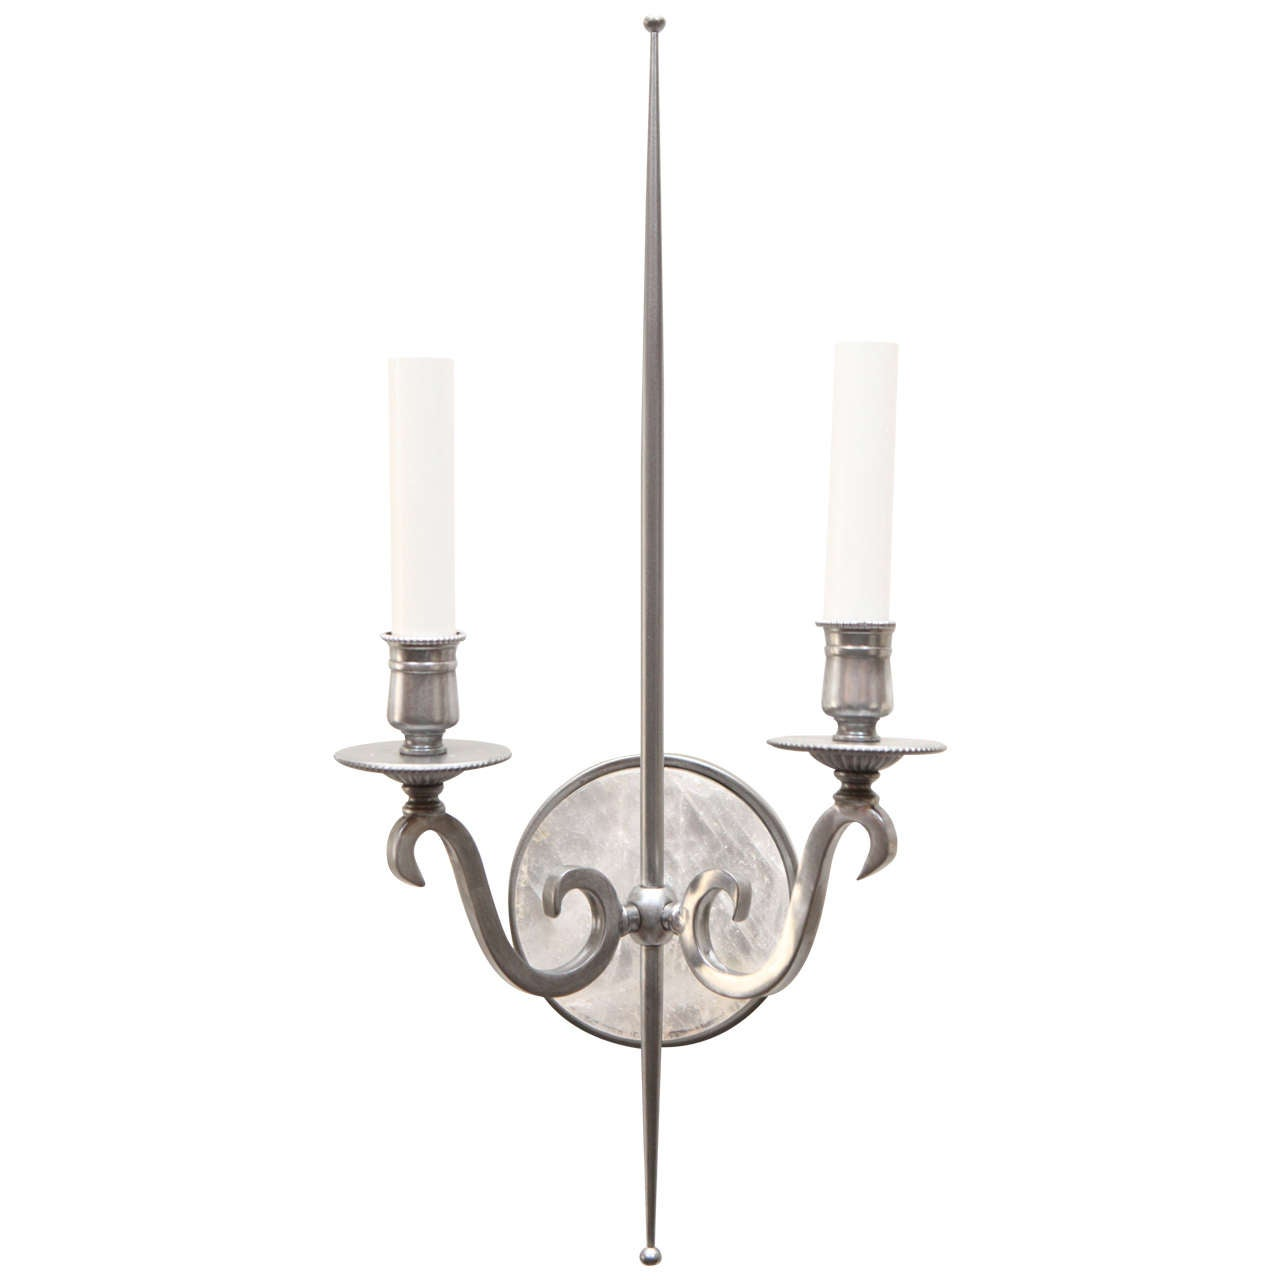 Pewter and Rock Crystal Sconces Parzinger Influence 1